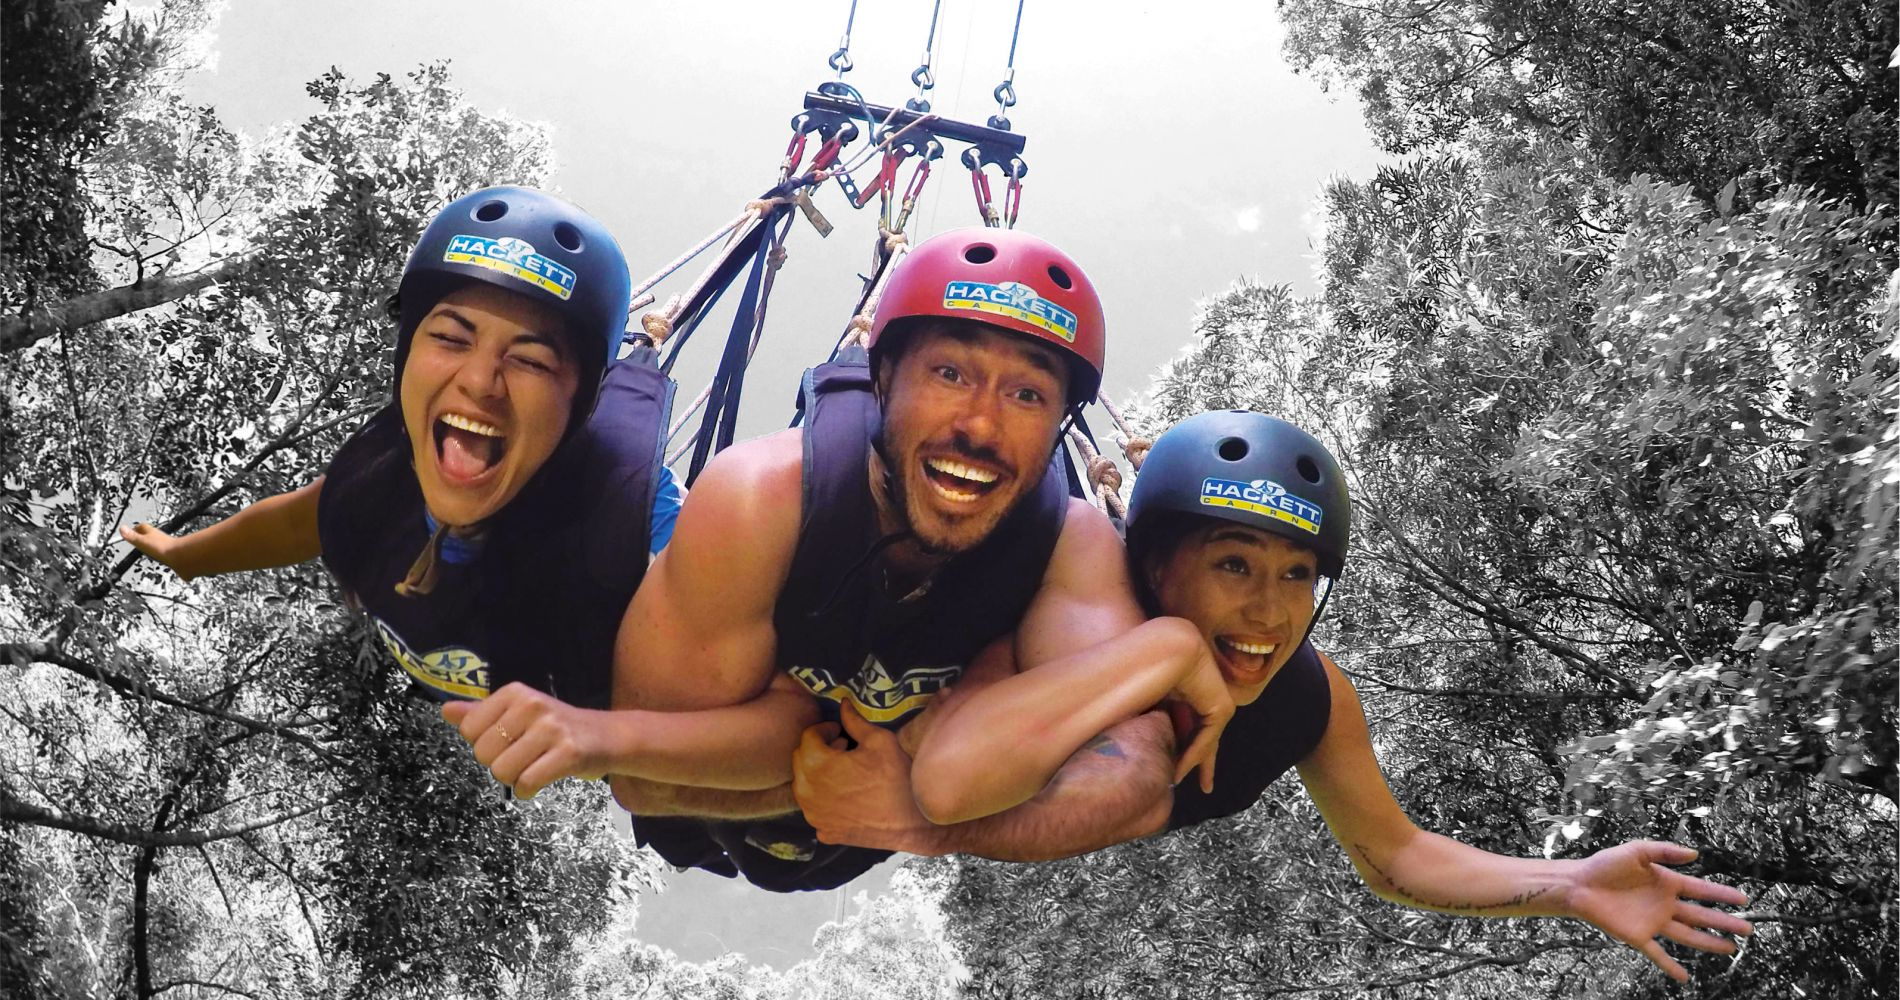 Australia jungle swing Queenstown Tinggly Gift experiences